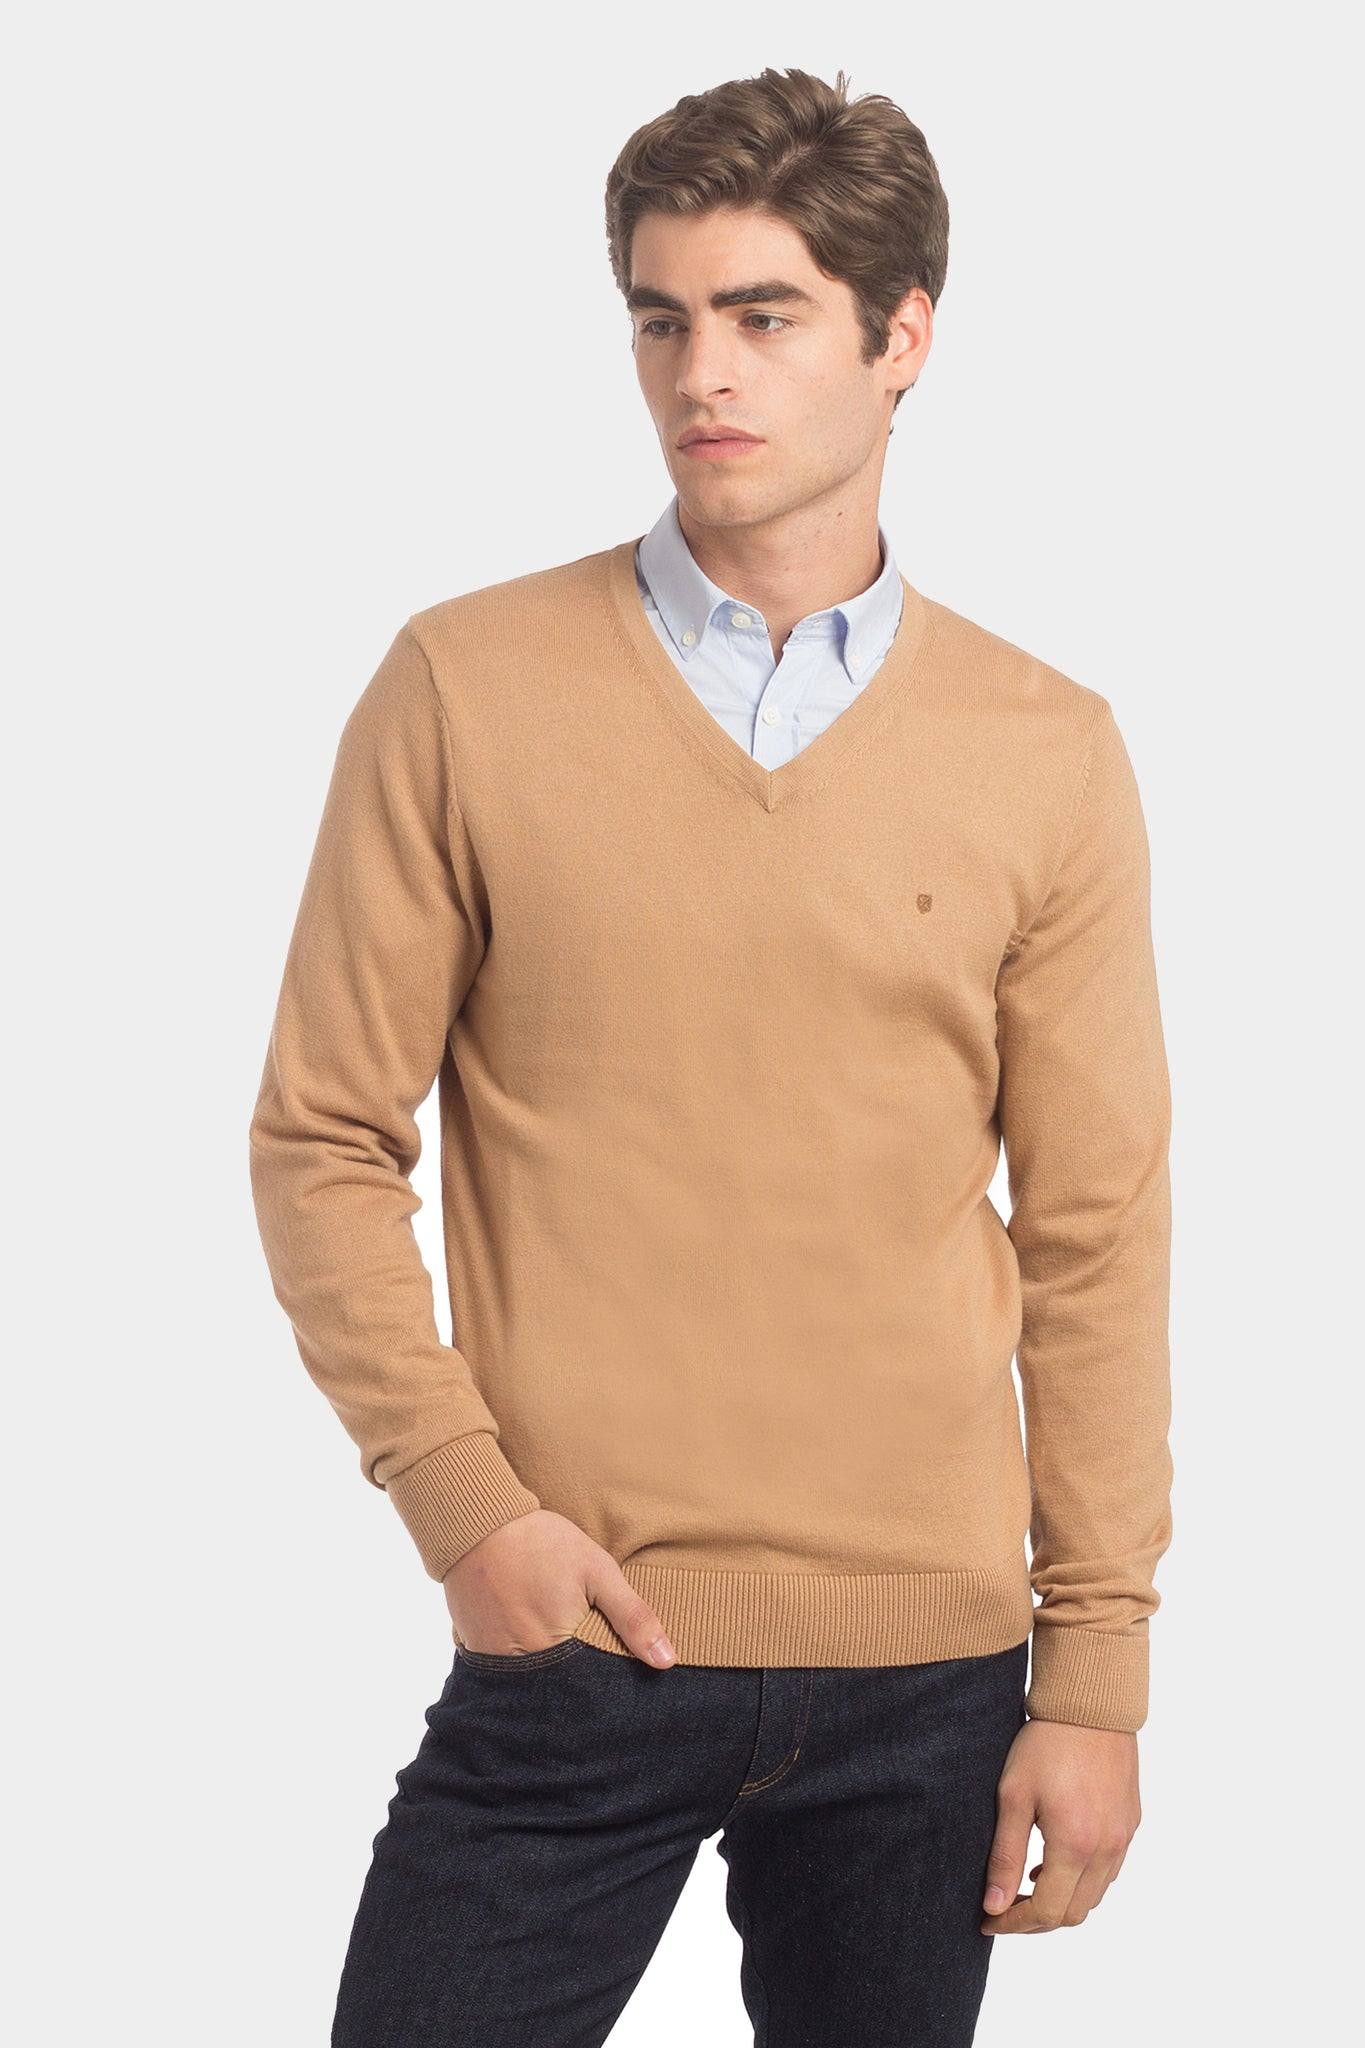 Camel cashmere Pullover with v-neck